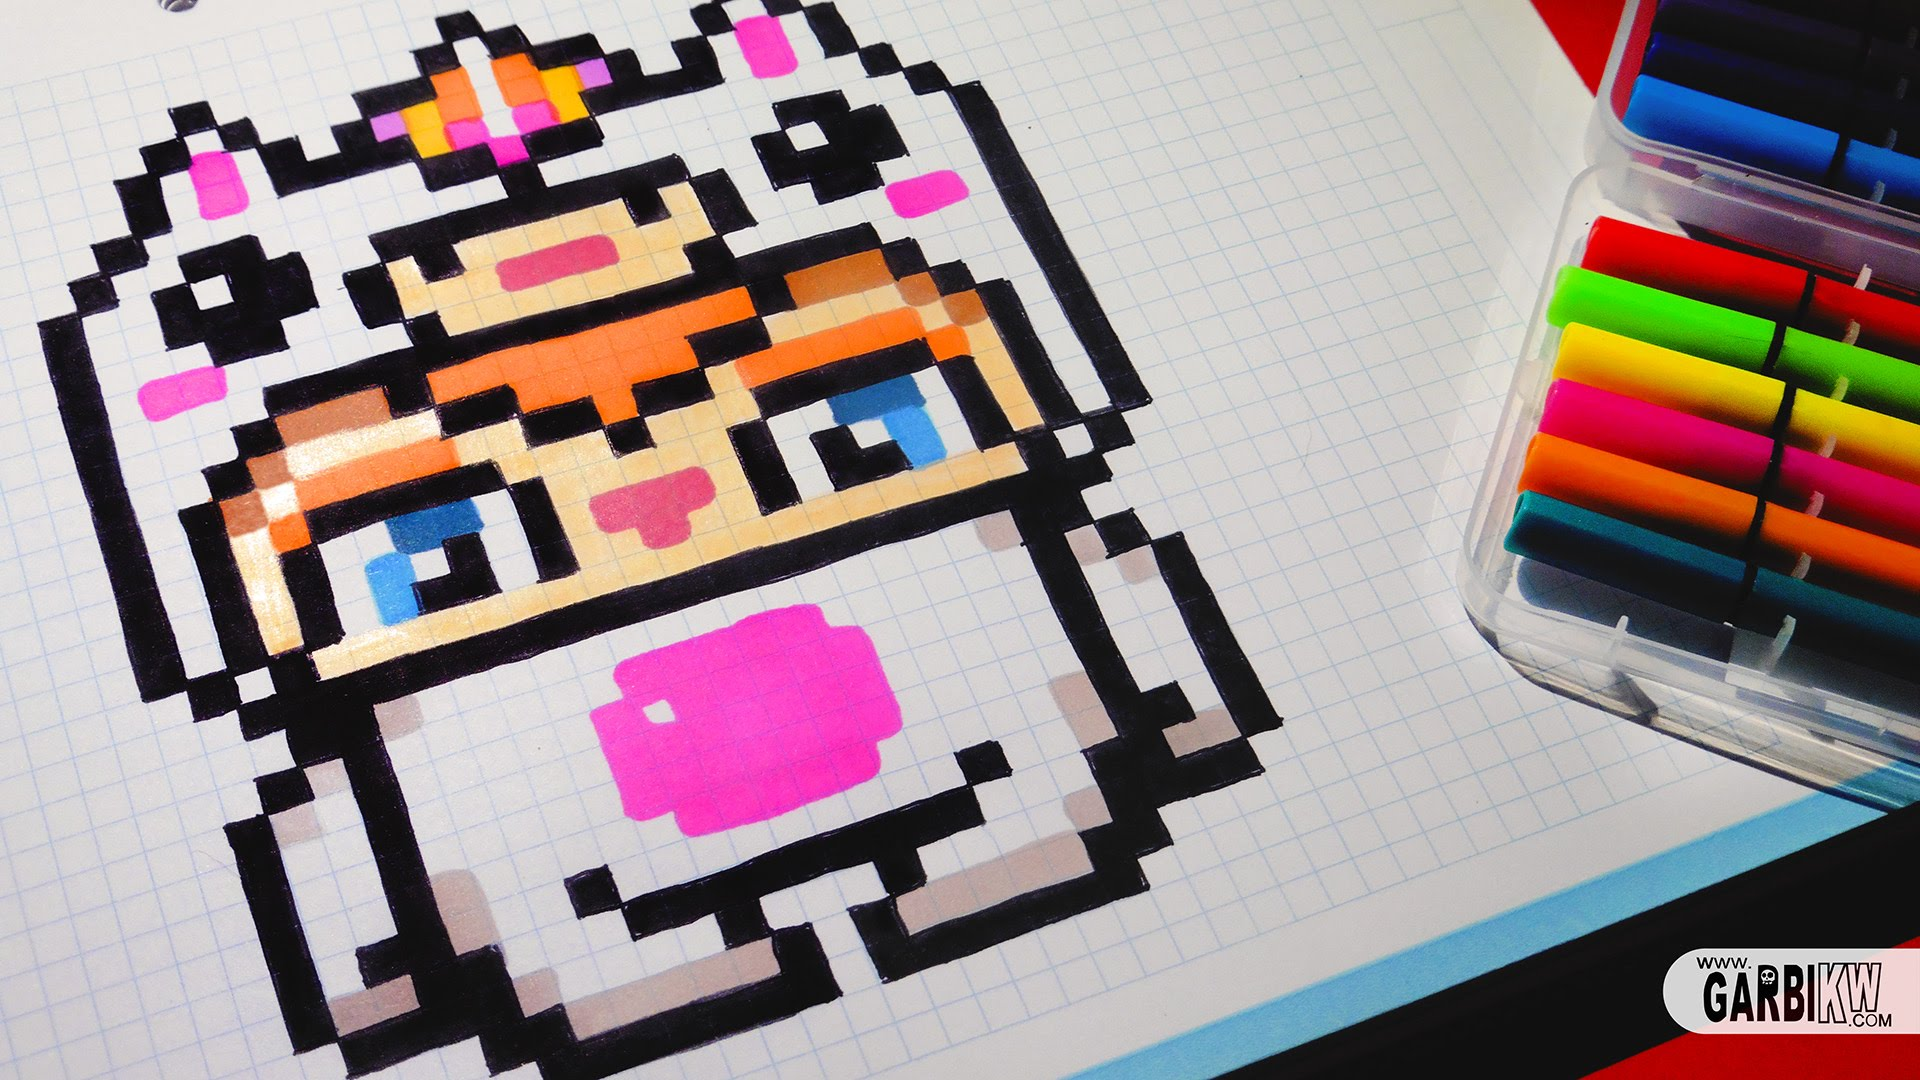 Drawn pixel art garbi kw  Art Garbi Boy by